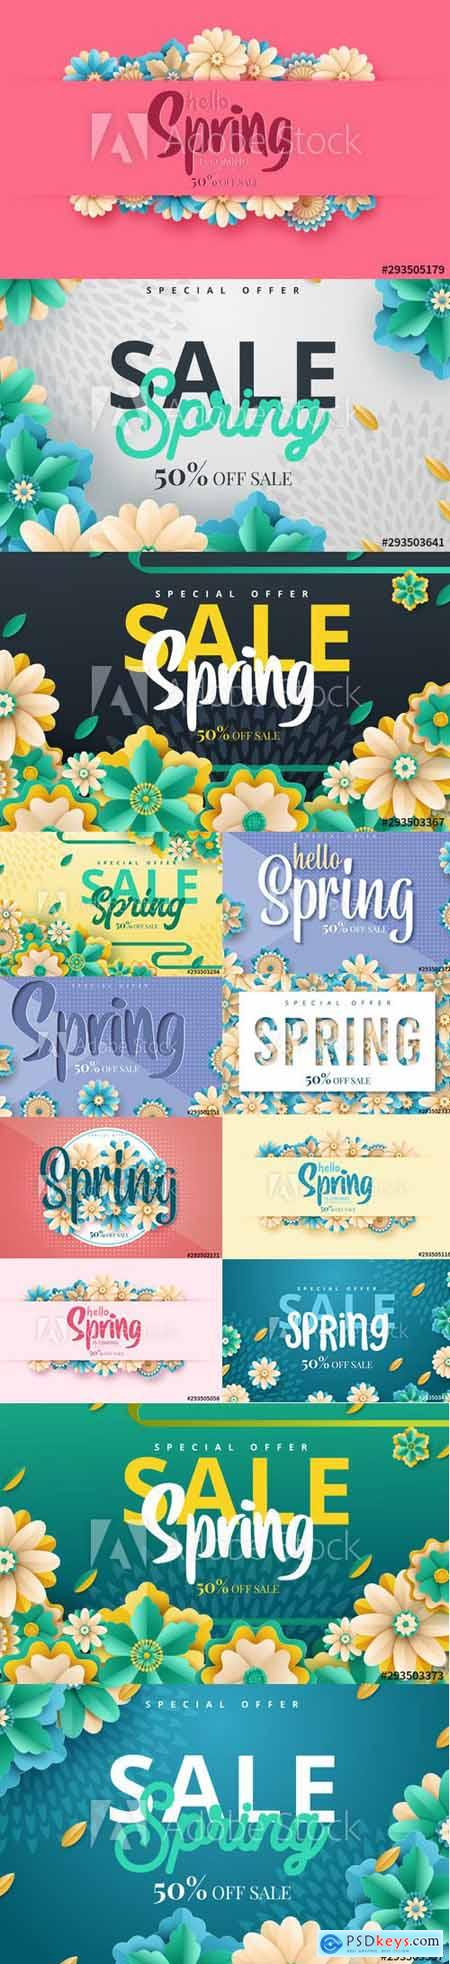 Set of Spring Sale Backgrounds with Flowers vol2